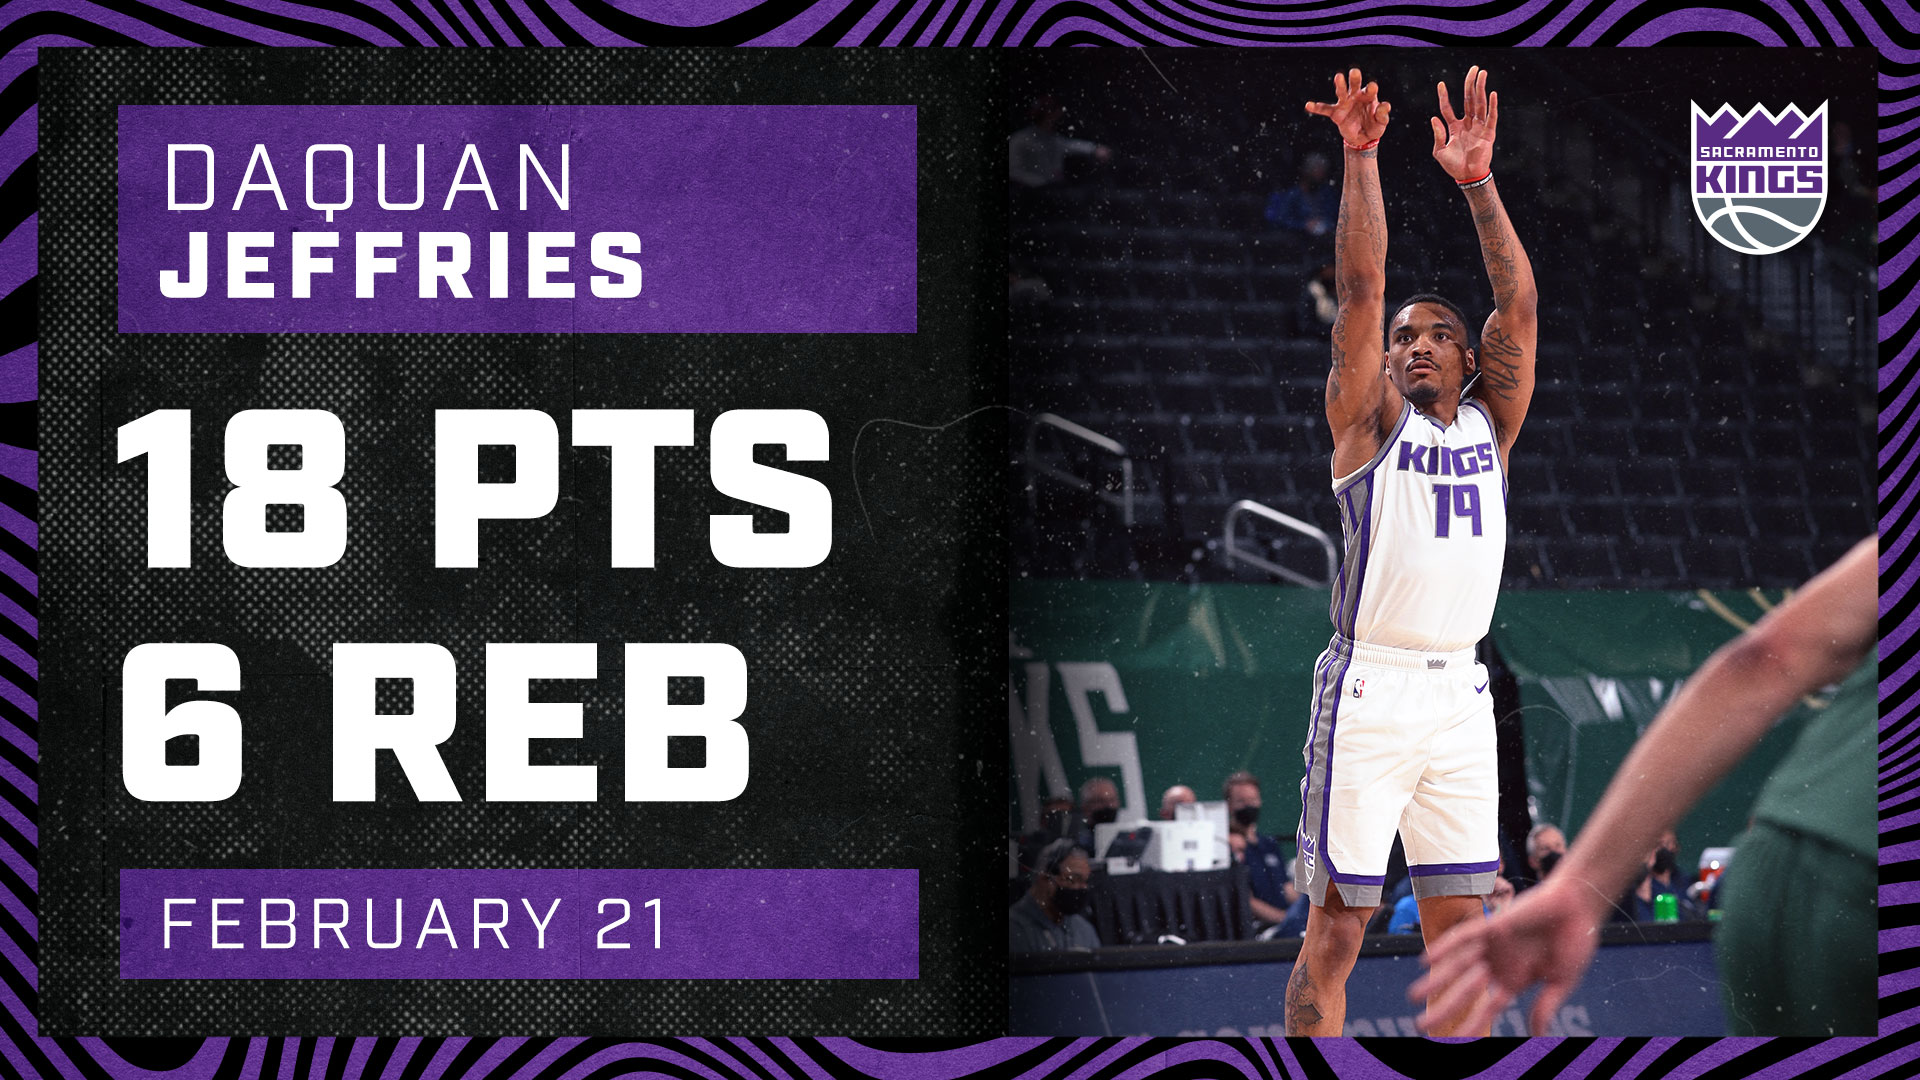 DaQuan Jeffries Stepped Up with a CAREER-HIGH 40 Minutes | Kings vs Bucks 2.21.21